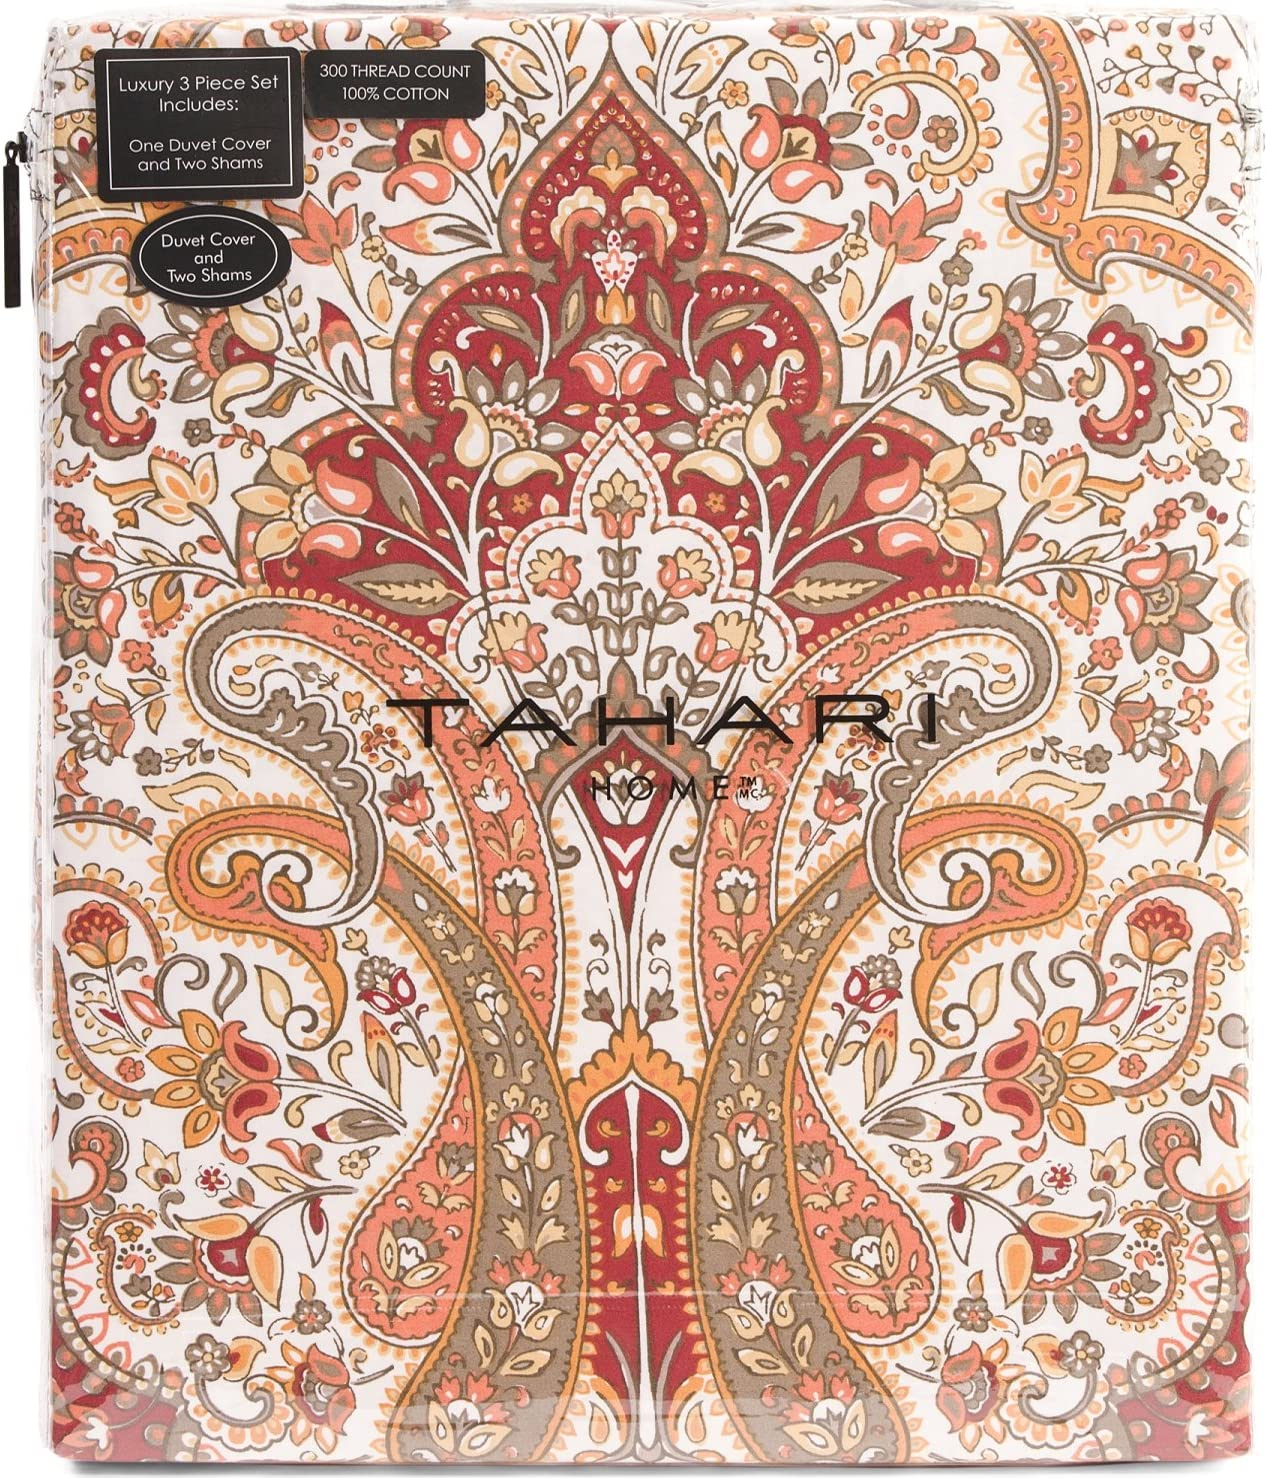 Tahari Home Bohemian Style Red Orange White Full Queen King Duvet Cover 3pc Set Moroccan Paisley Medallion Luxury Cotton(King)